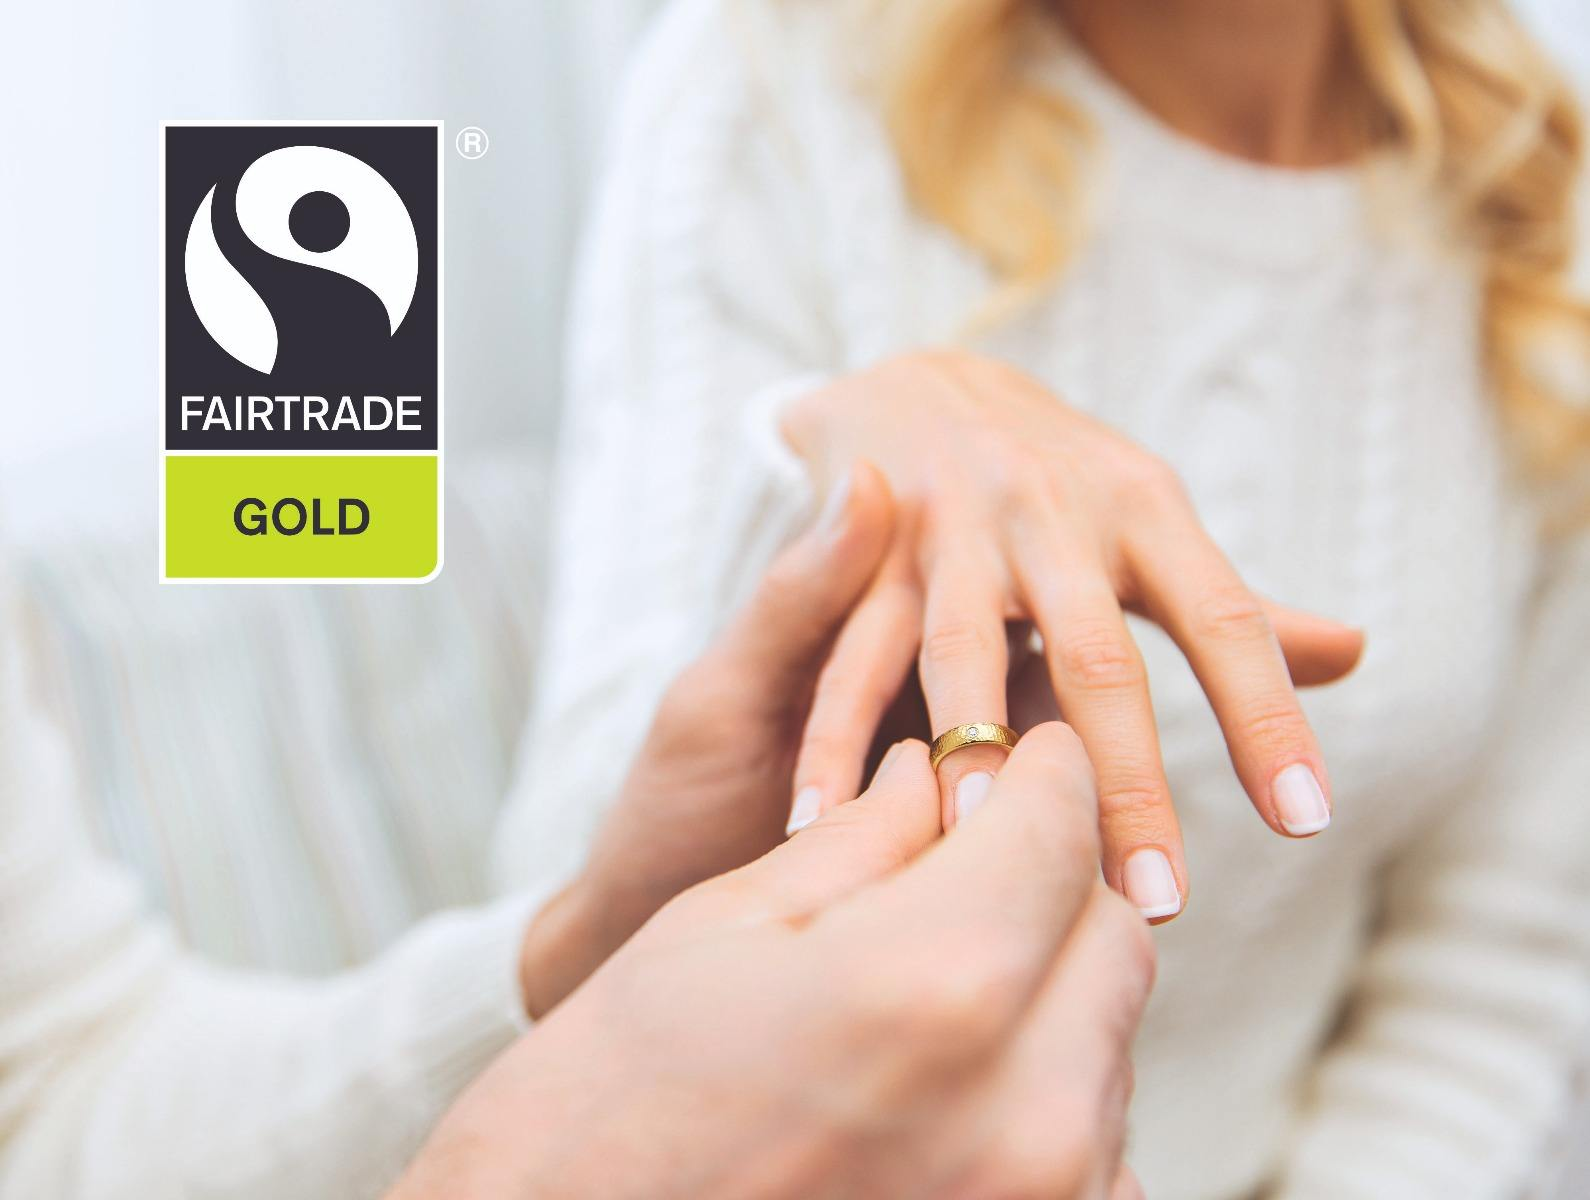 Fairtrade-Gold Ehering Kollektion Dorotheum Juwelier